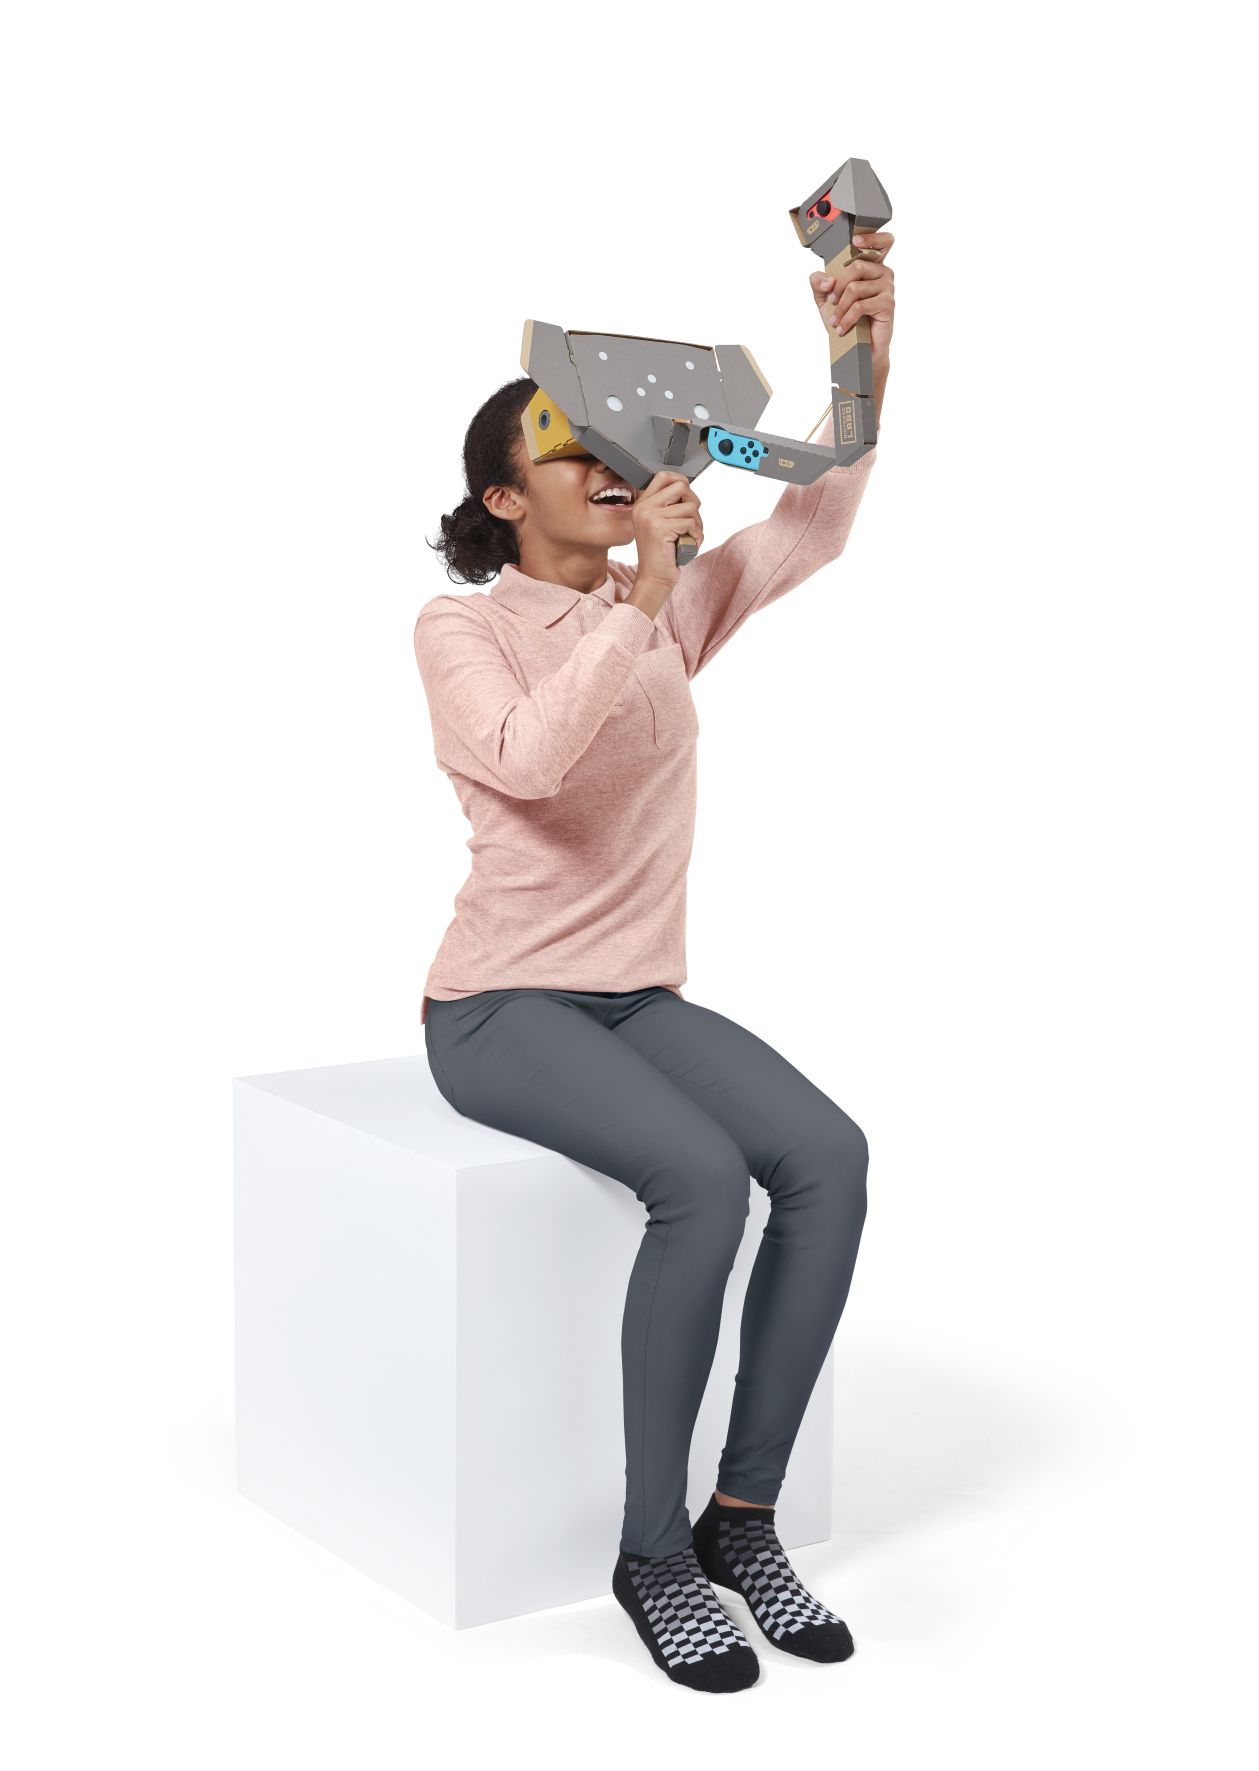 Nintendo Switch Labo VR